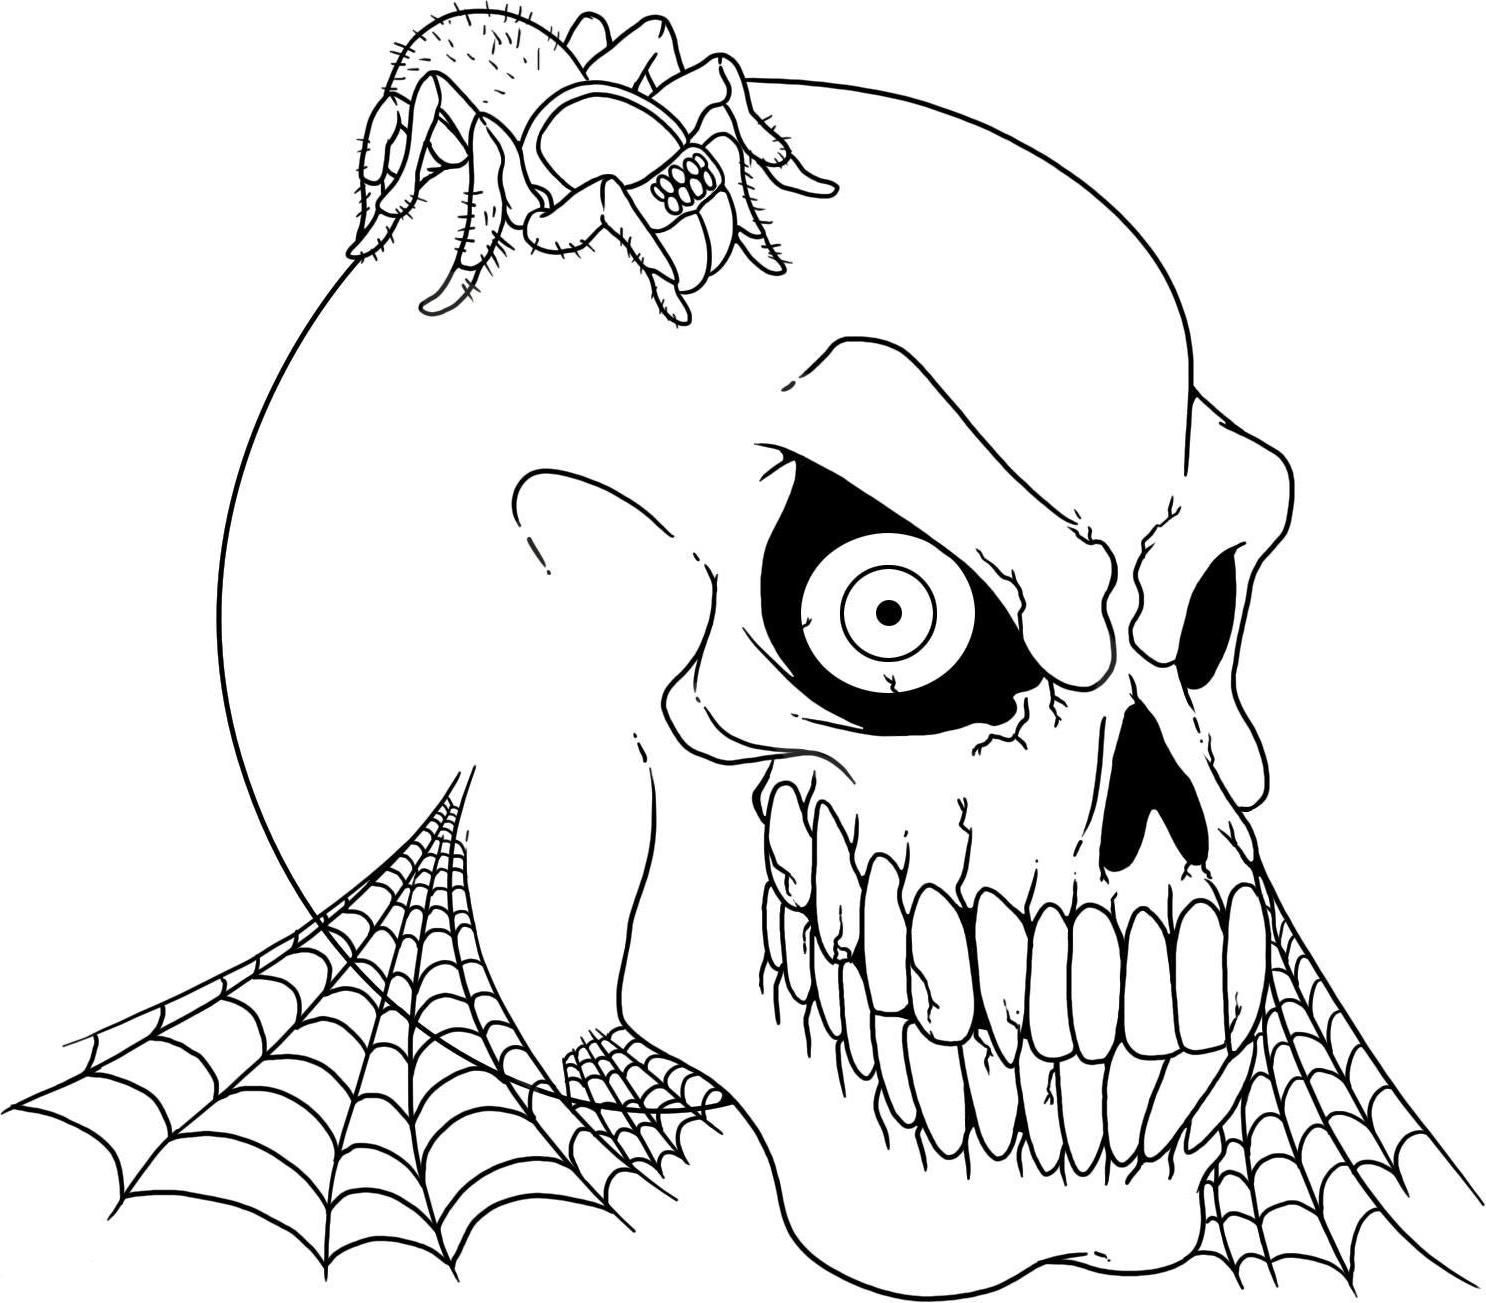 drawings of halloween stuff scary halloween coloring pages free large images skull drawings of halloween stuff